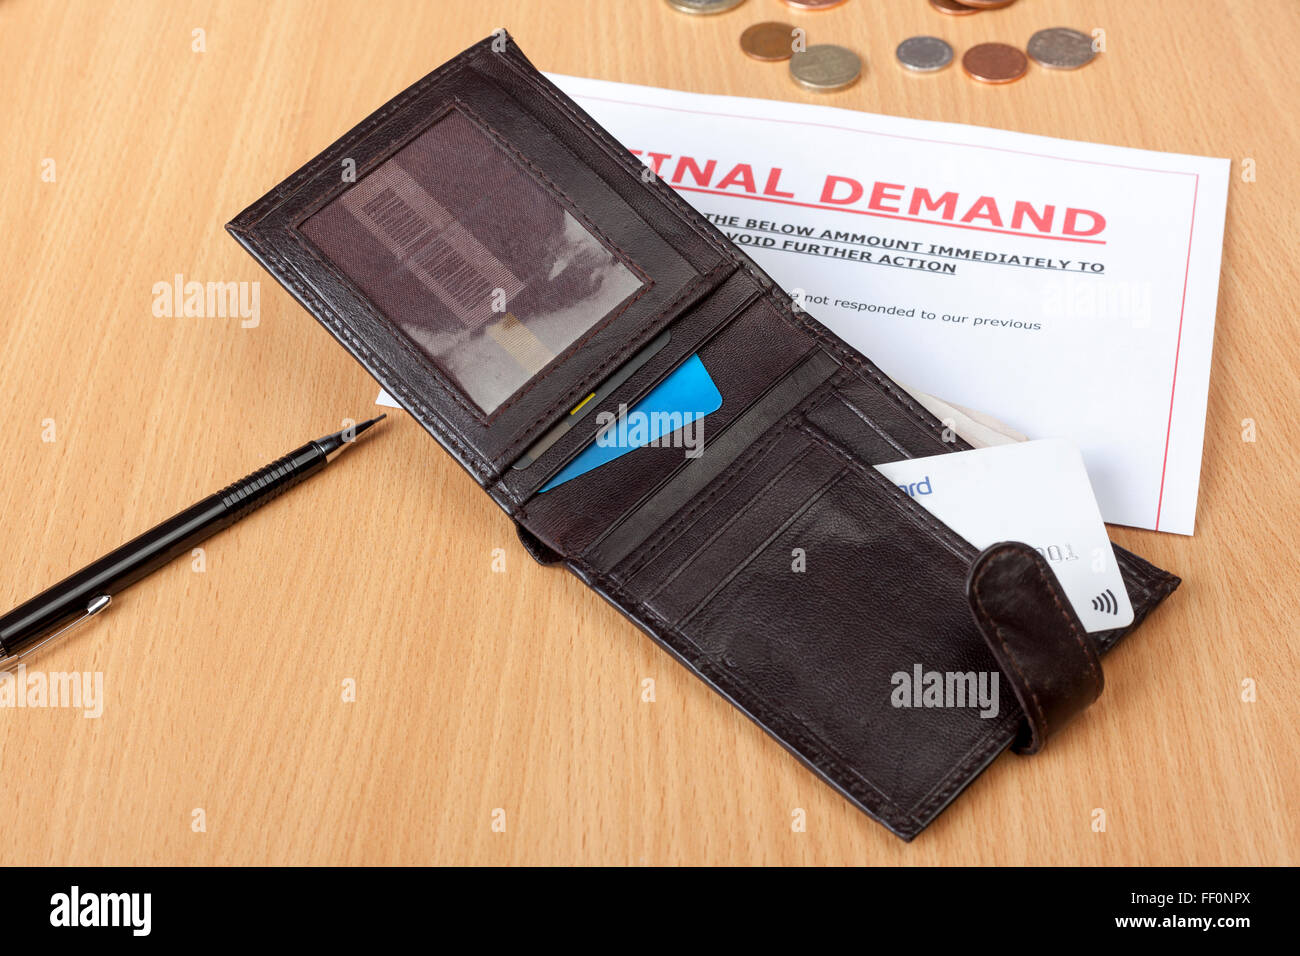 Final demand on a desk with a credit card in a wallet with some cash - Stock Image